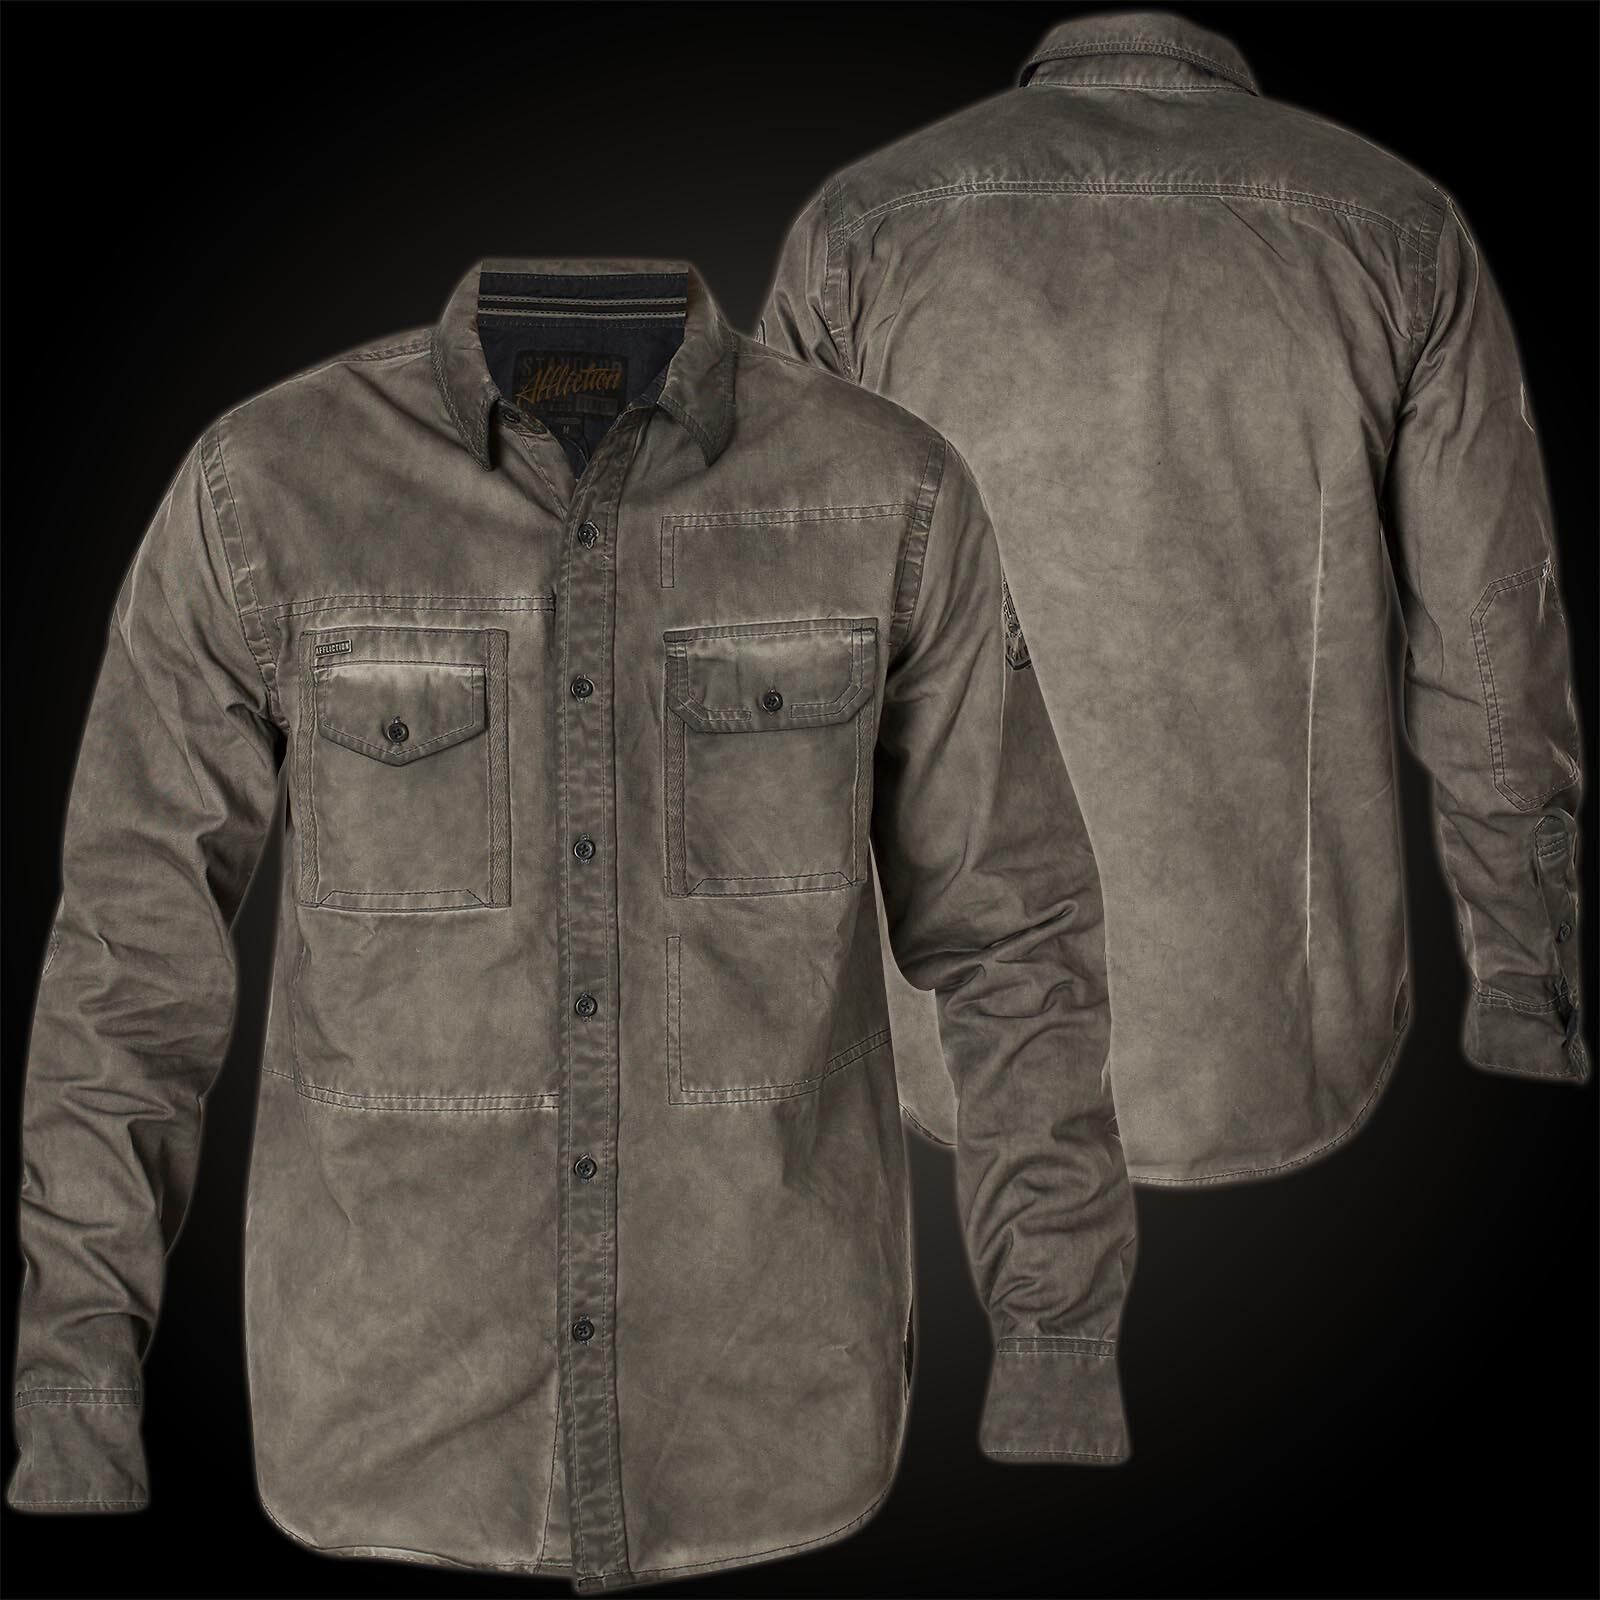 Affliction Camicia GRAPHITE Bay Camicie GRIGIO